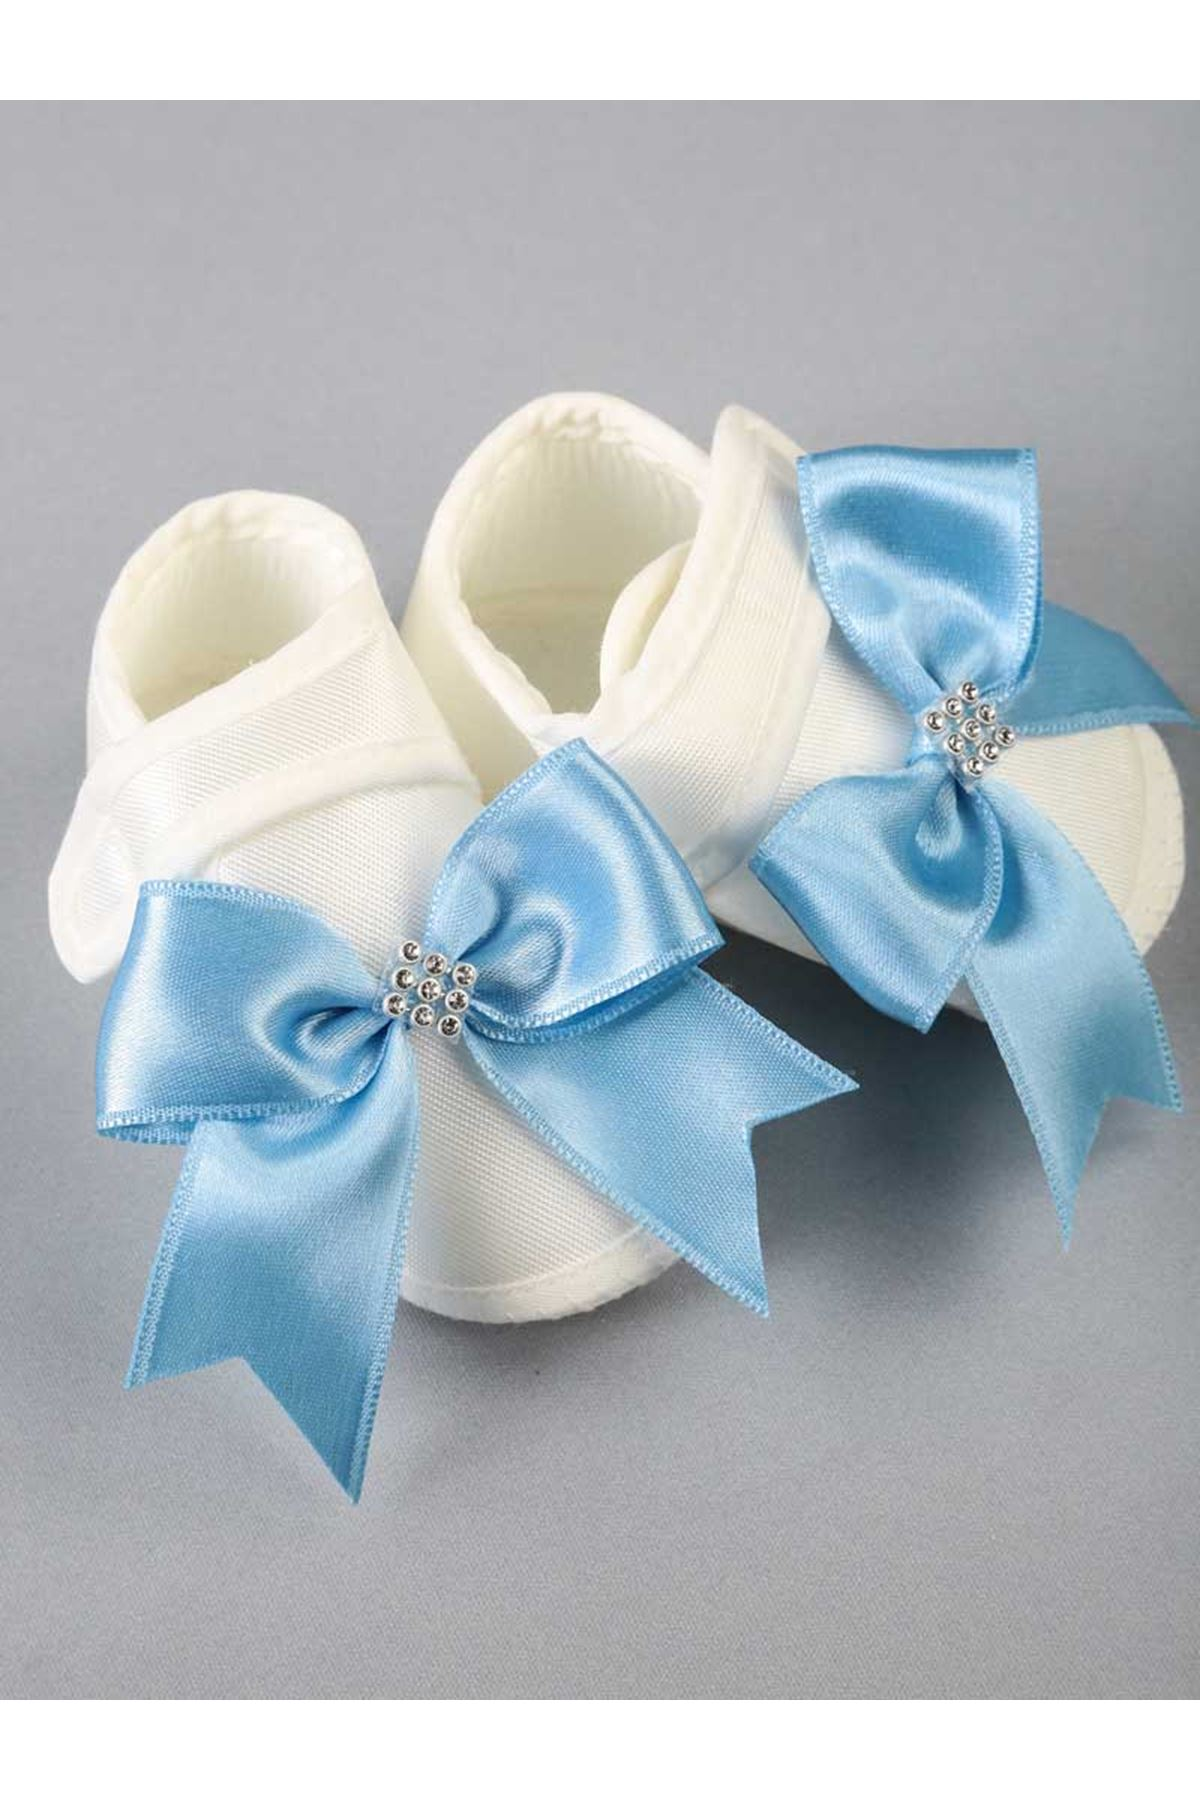 Blue Baby Rompers Boy newborn clothes King Crown 5pcs Set hat shoes gloves Prince clothing cotton babies types newborn varieties of